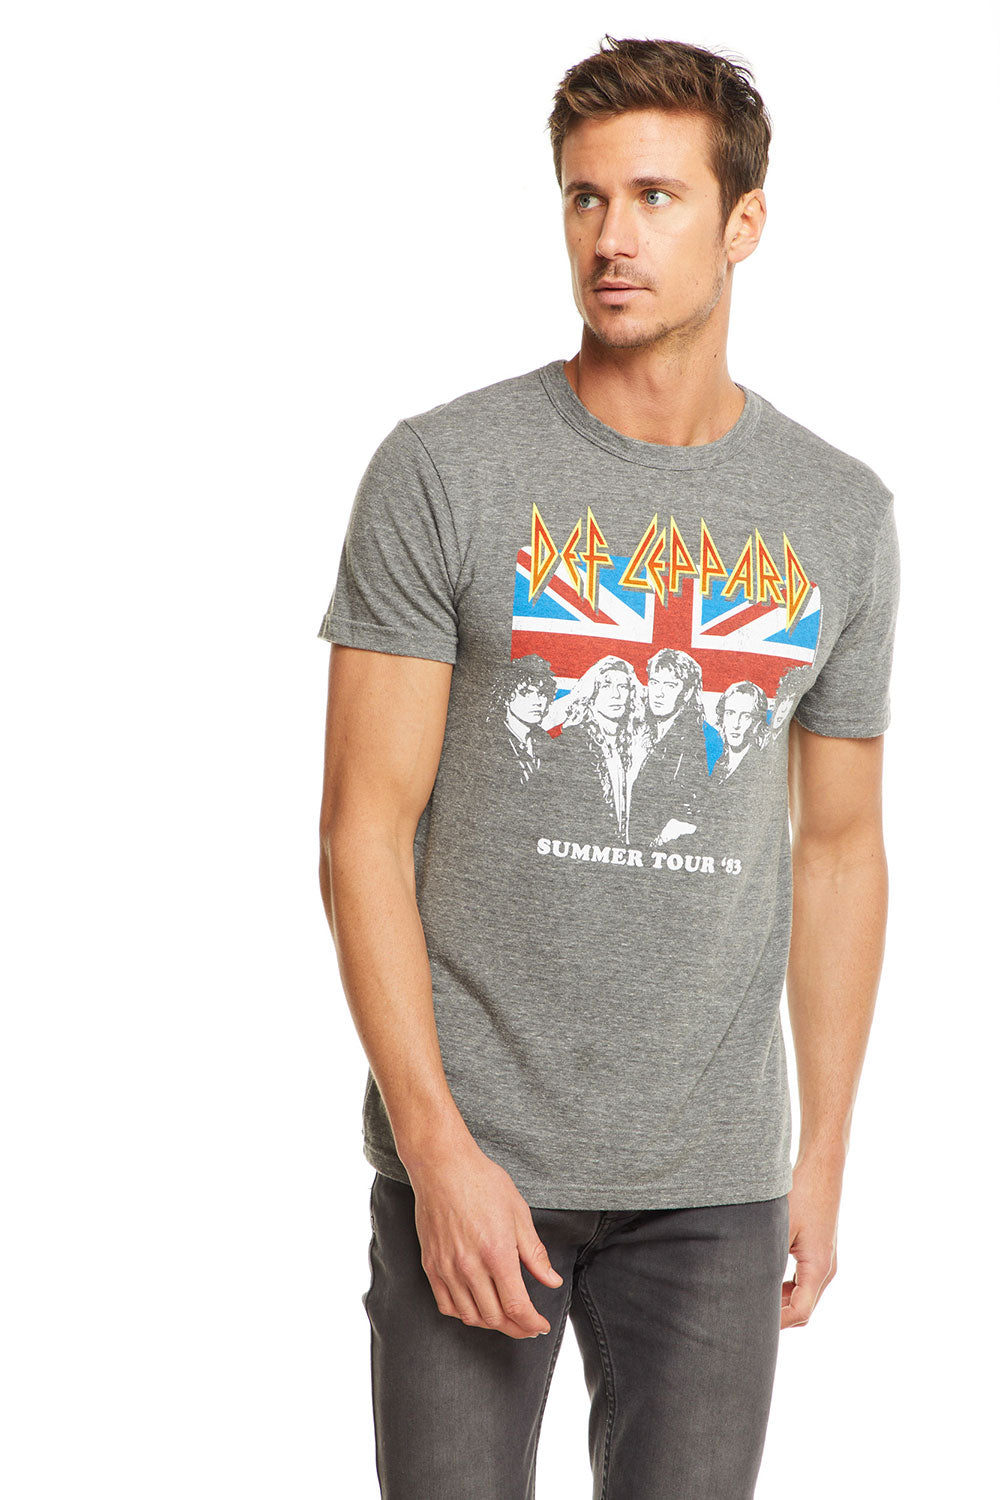 Def Leppard - Summer Tour '83 MENS chaserbrand4.myshopify.com